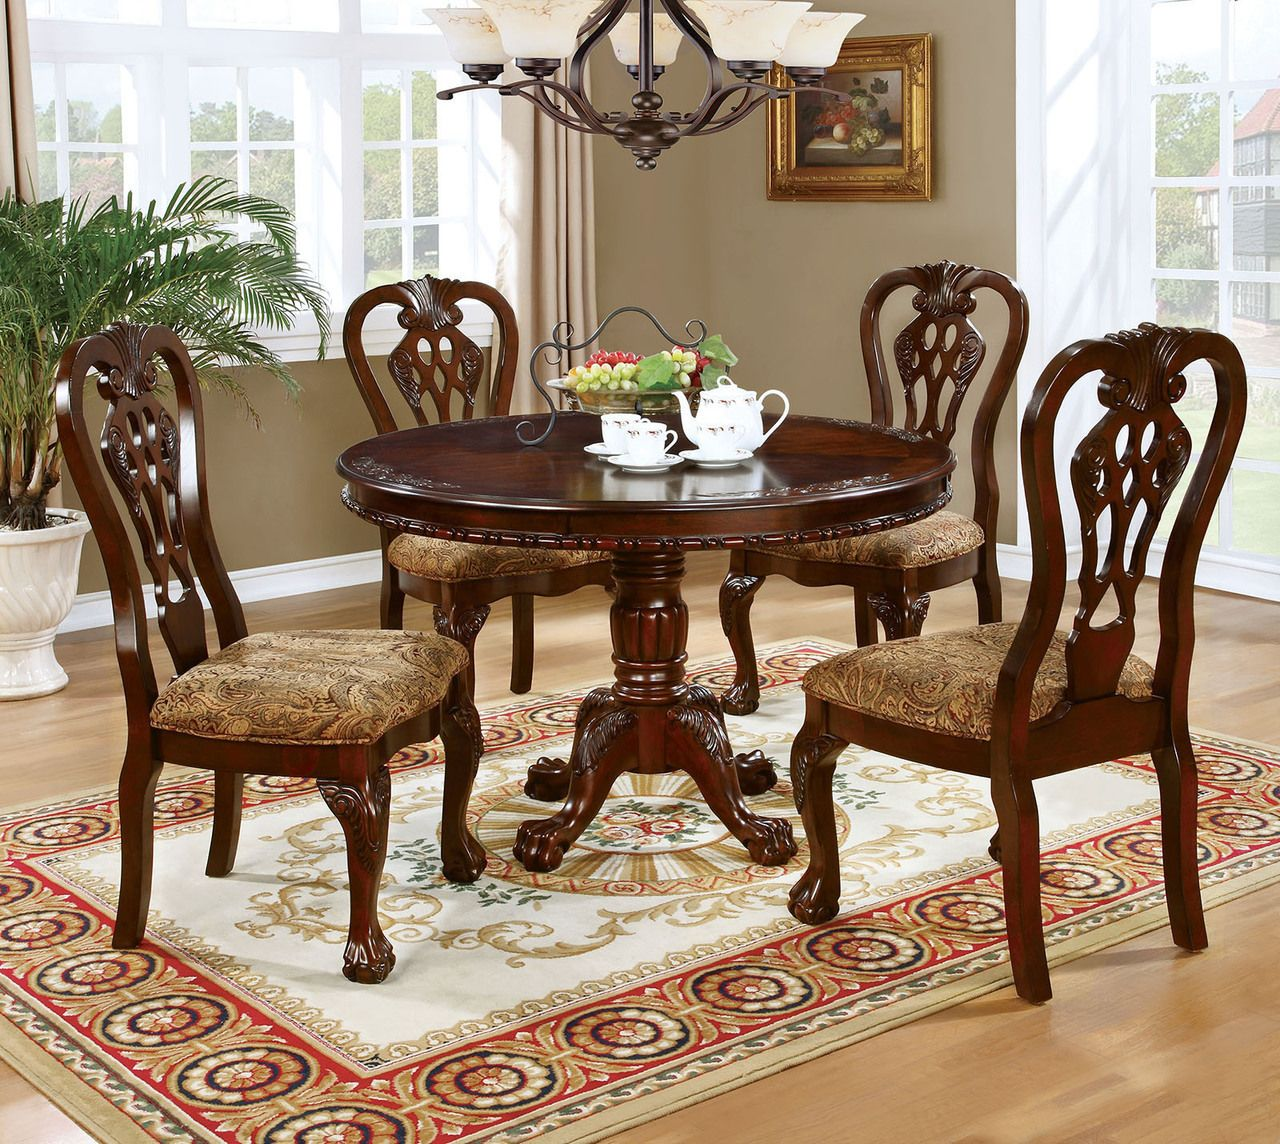 Lina 5 Piece Brown Cherry Round Table Set Round Dining Room Sets